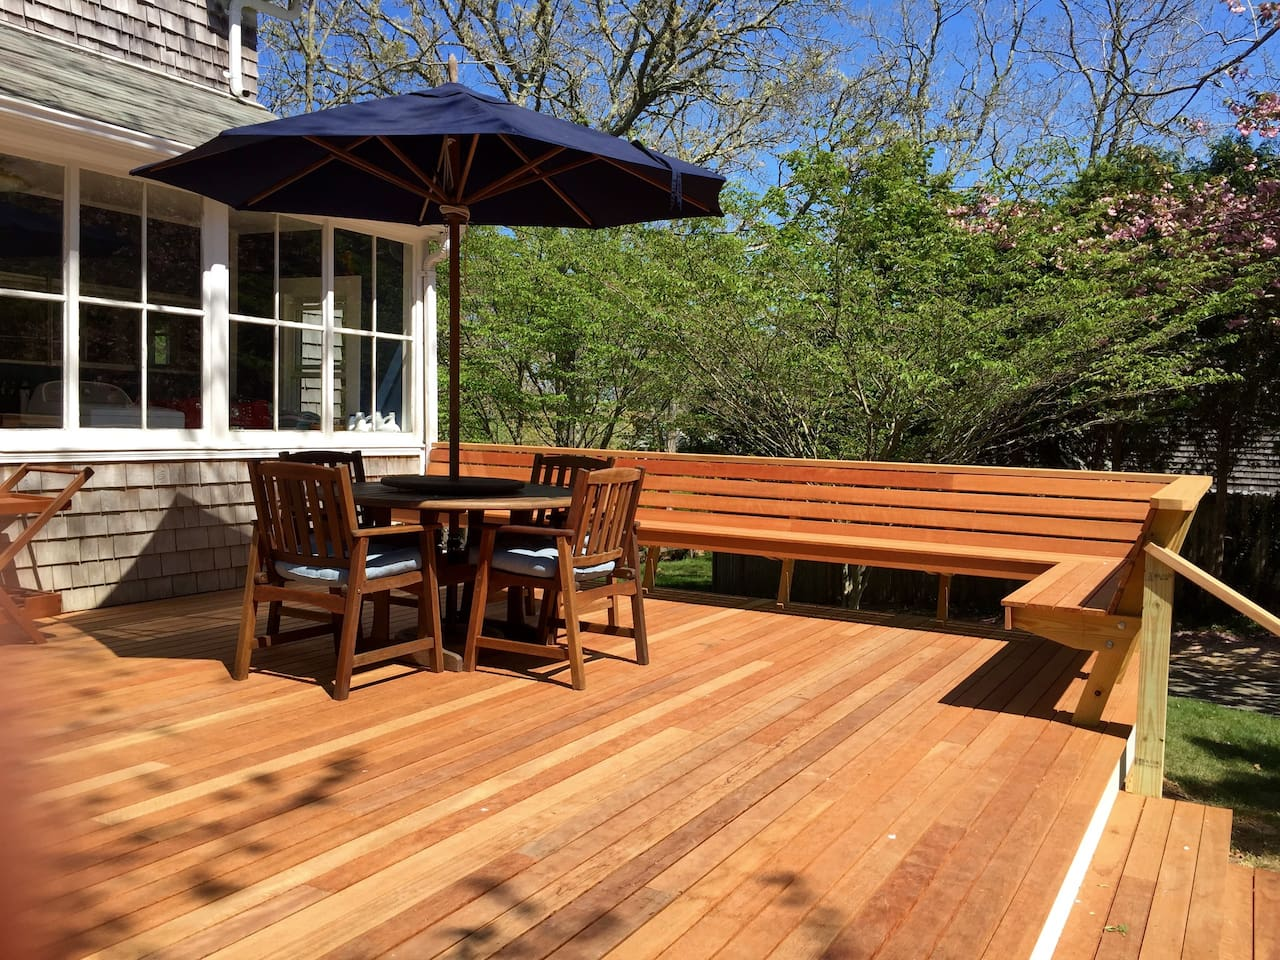 Great new cedar deck, perfect for outdoor dining, entertaining, or relaxing in the sunshine.